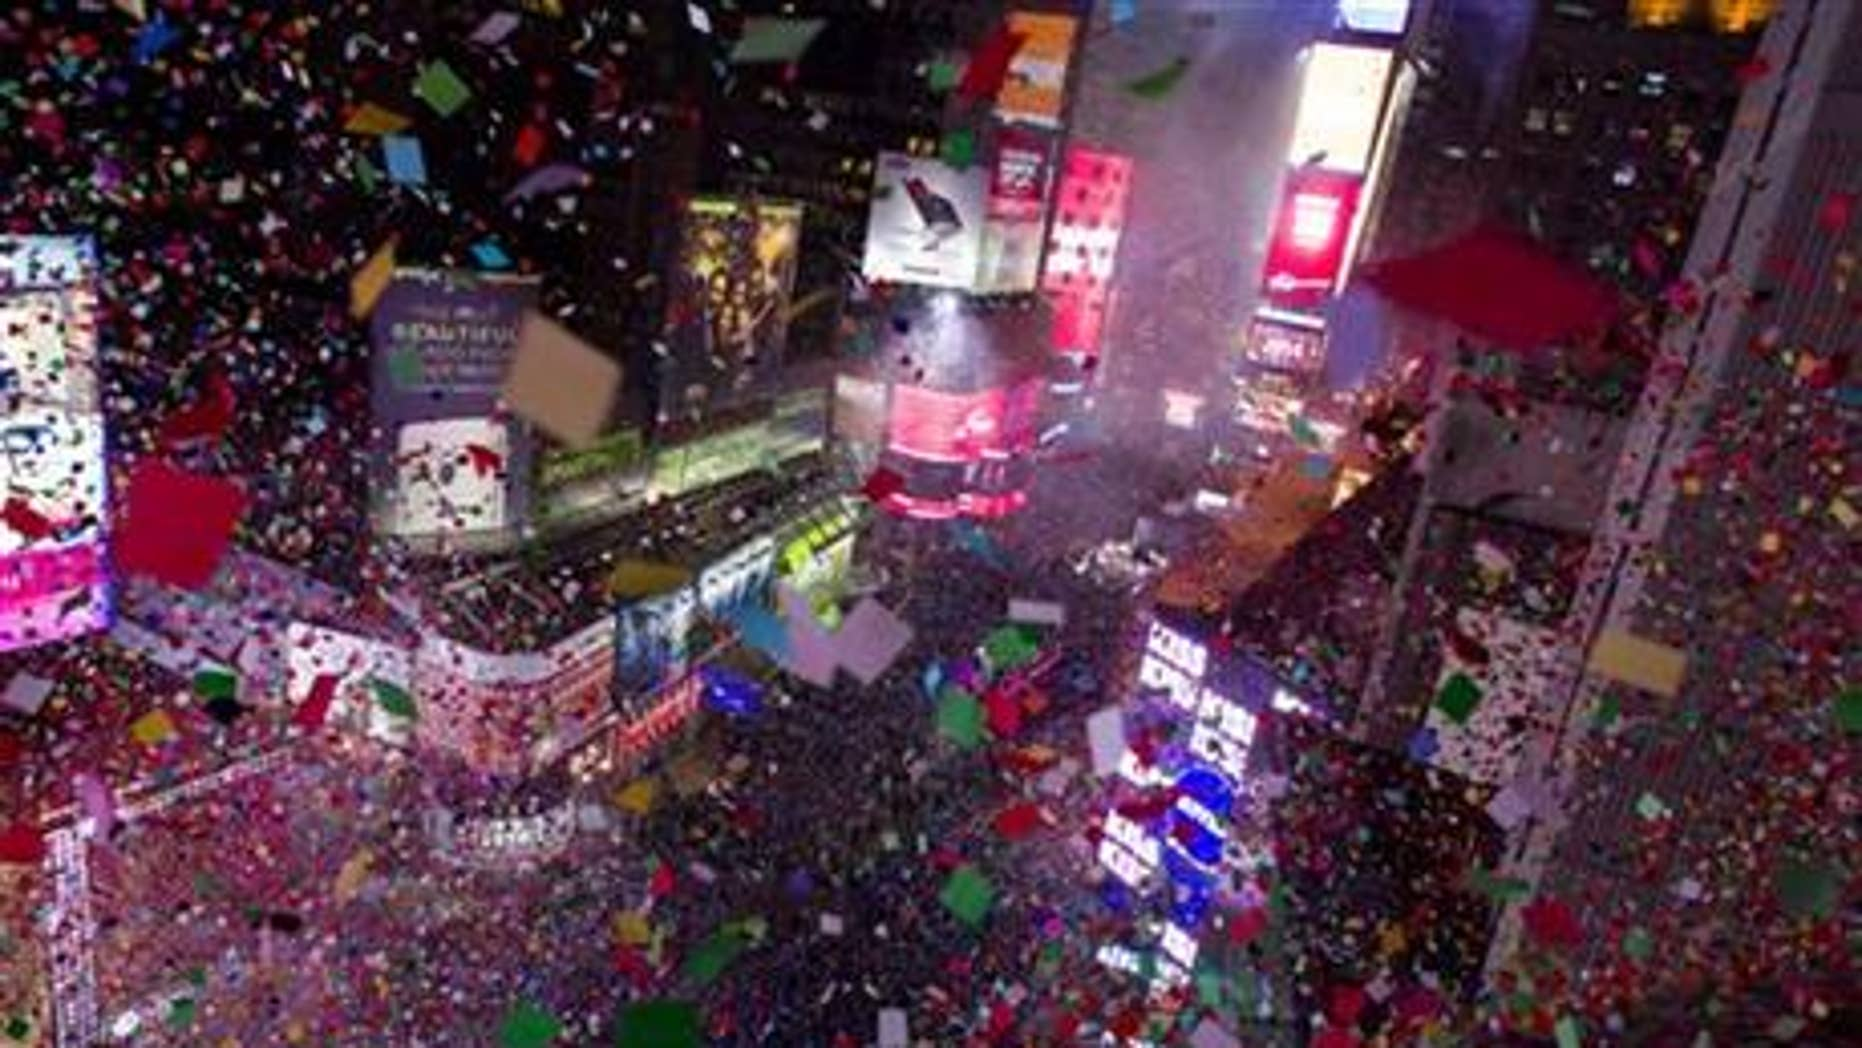 New Year's Eve in Times Square, New York City.